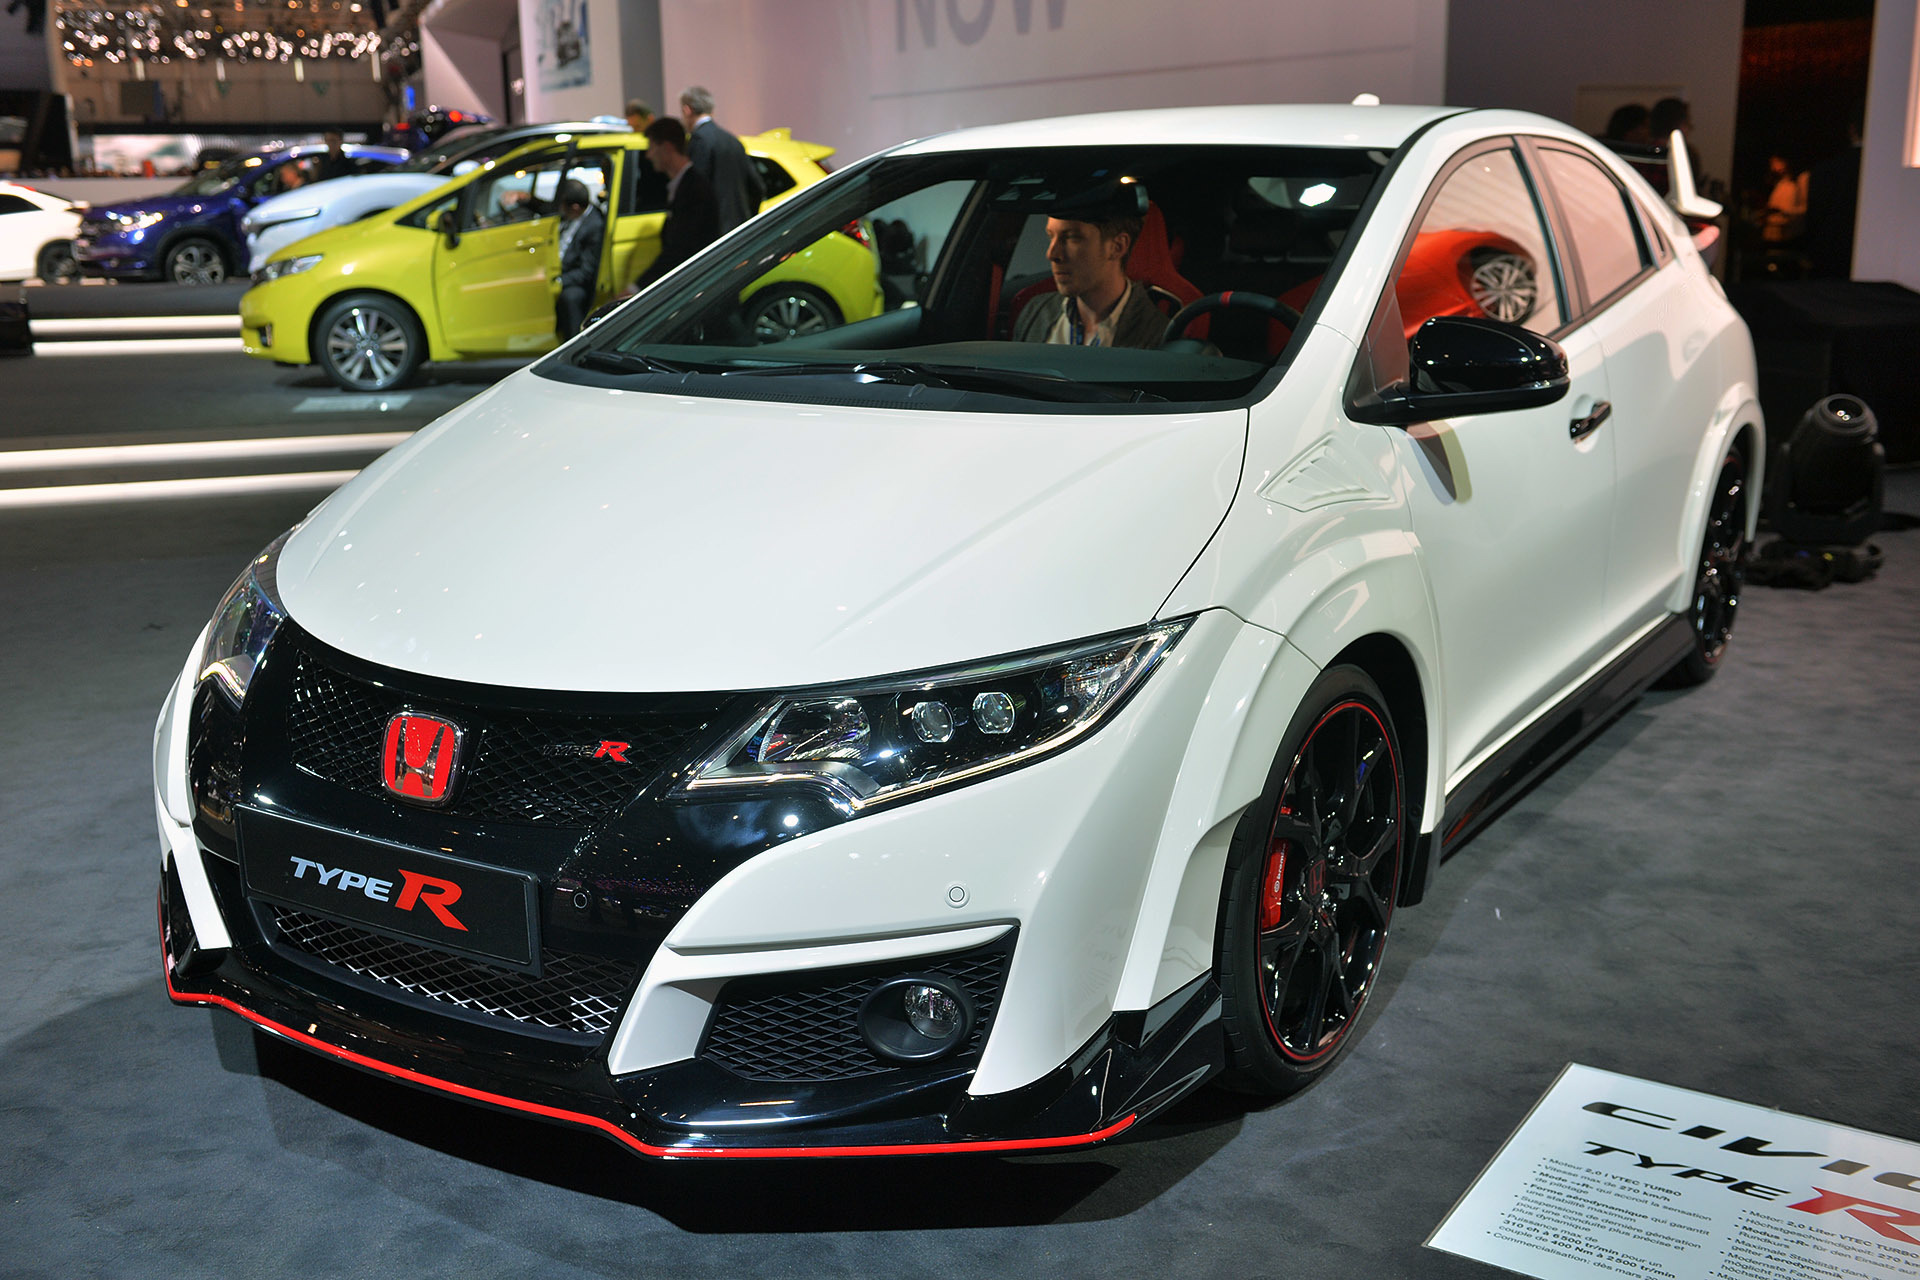 2016 honda civic type r geneva 2015 photo gallery autoblog. Black Bedroom Furniture Sets. Home Design Ideas